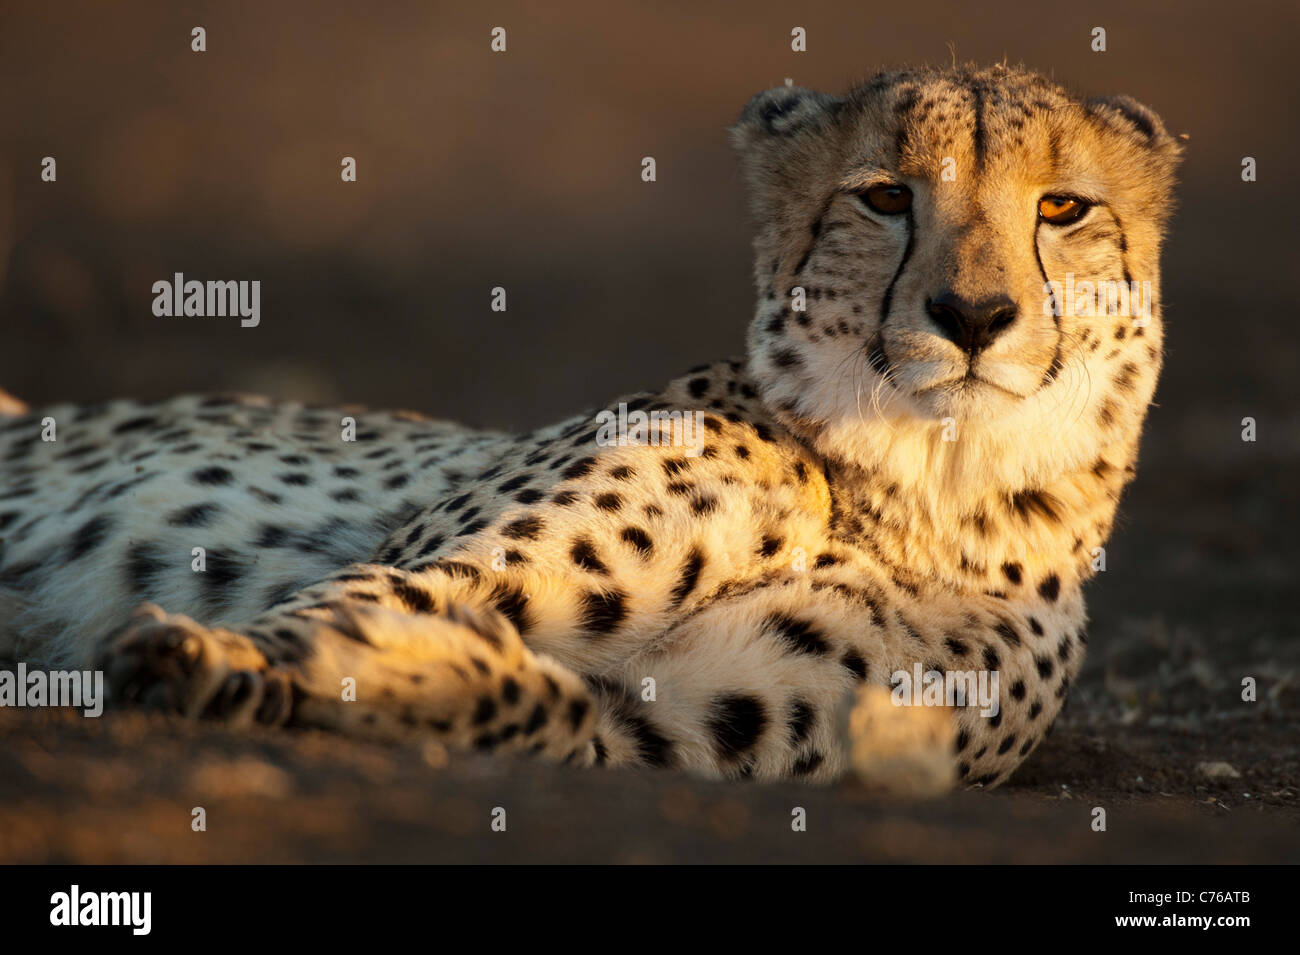 Cheetah (Acinonyx jubatus), Phinda Game Reserve, South Africa - Stock Image